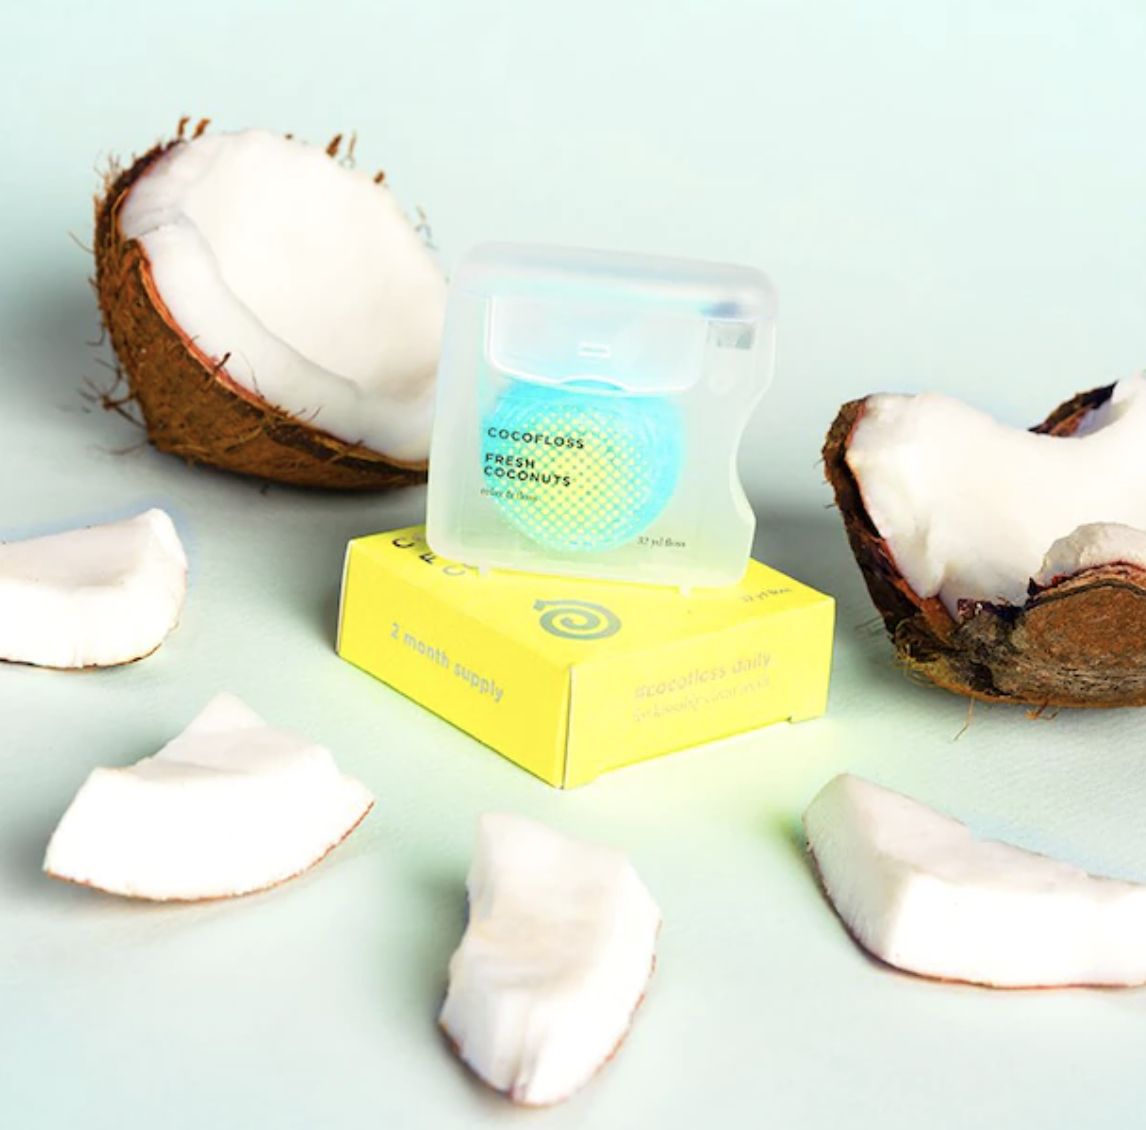 the floss on a box next to coconut pieces